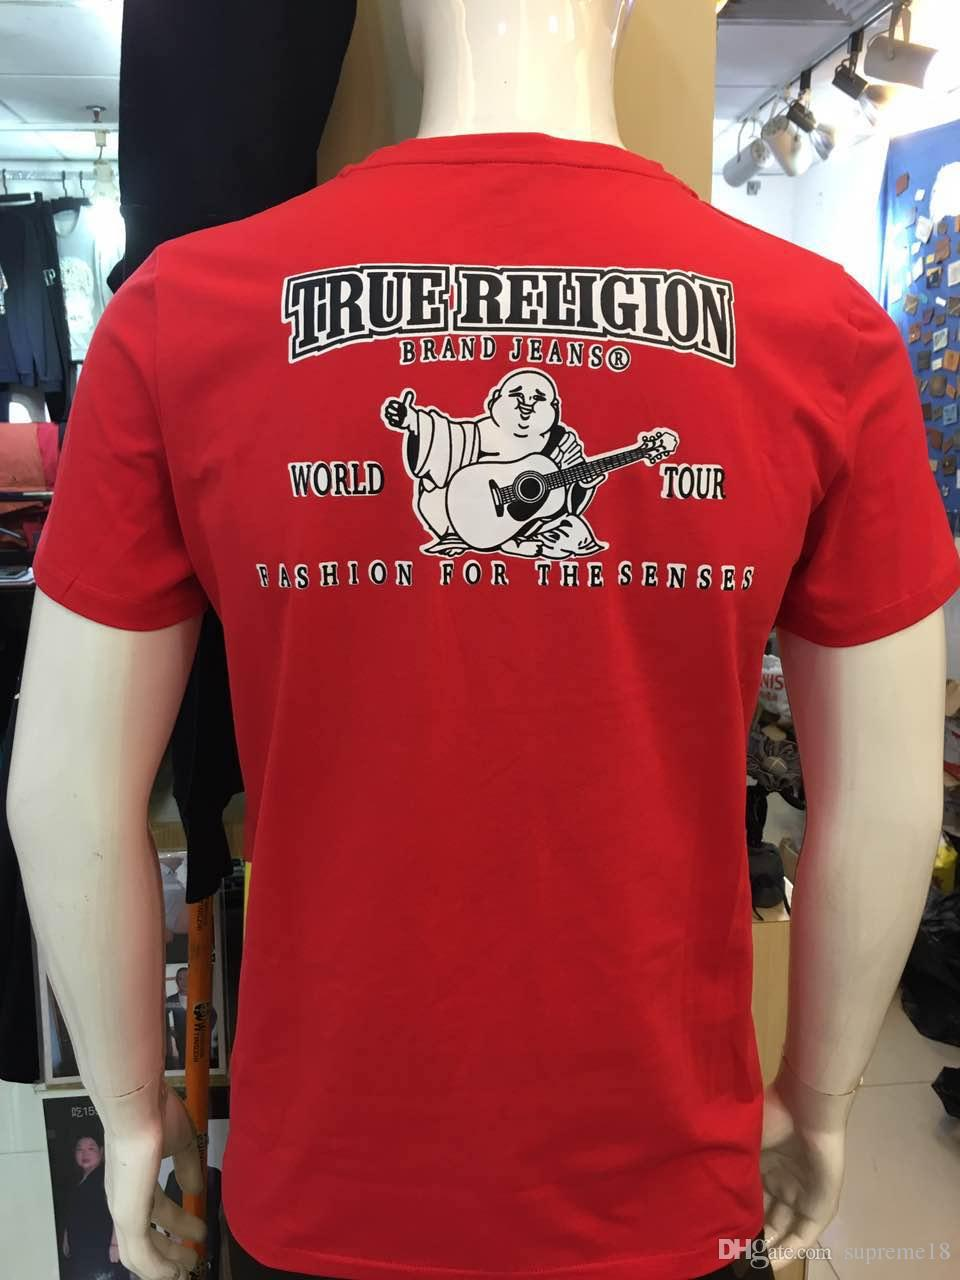 81a01d8b80c7 2018 High Quality USA Red Black White Mens Robin True Jeans Crew T Shirt  With Wings Real American Jeans Mtorcycle Club Slim Short Sleeve TEE Best T  Shirts ...